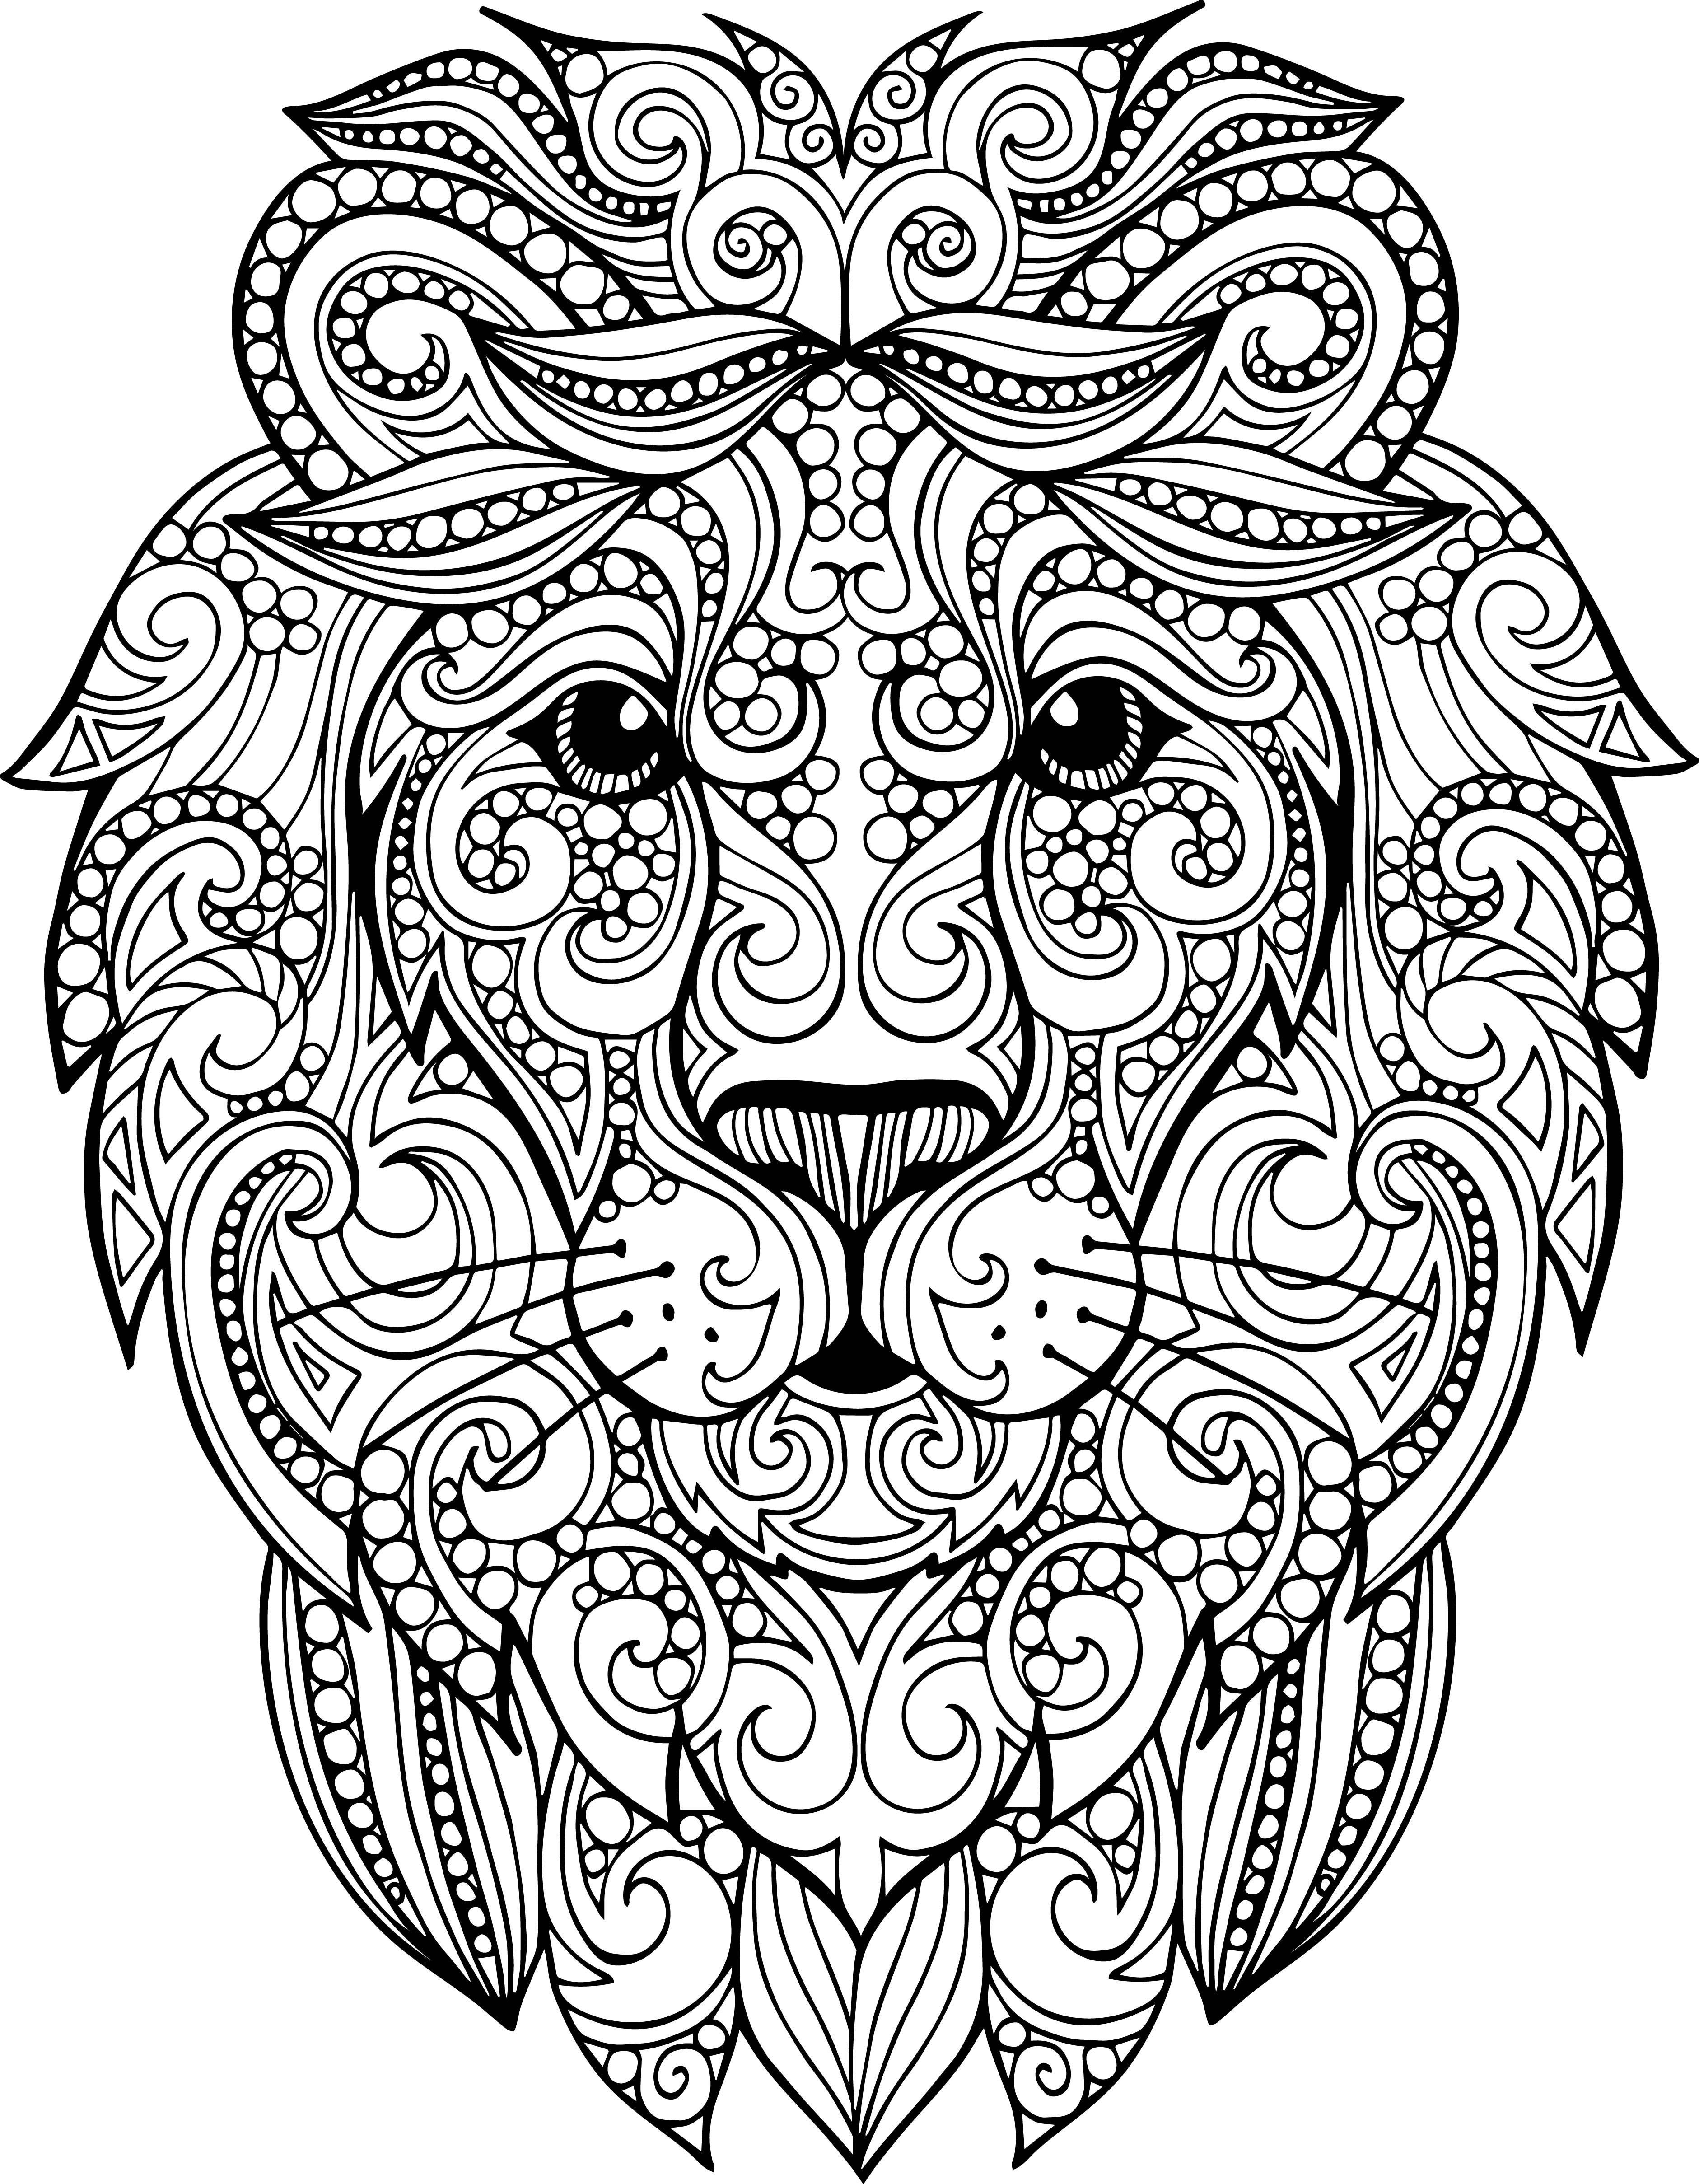 Pin On Joanna S Adult Coloring Books Vol 1 Pages